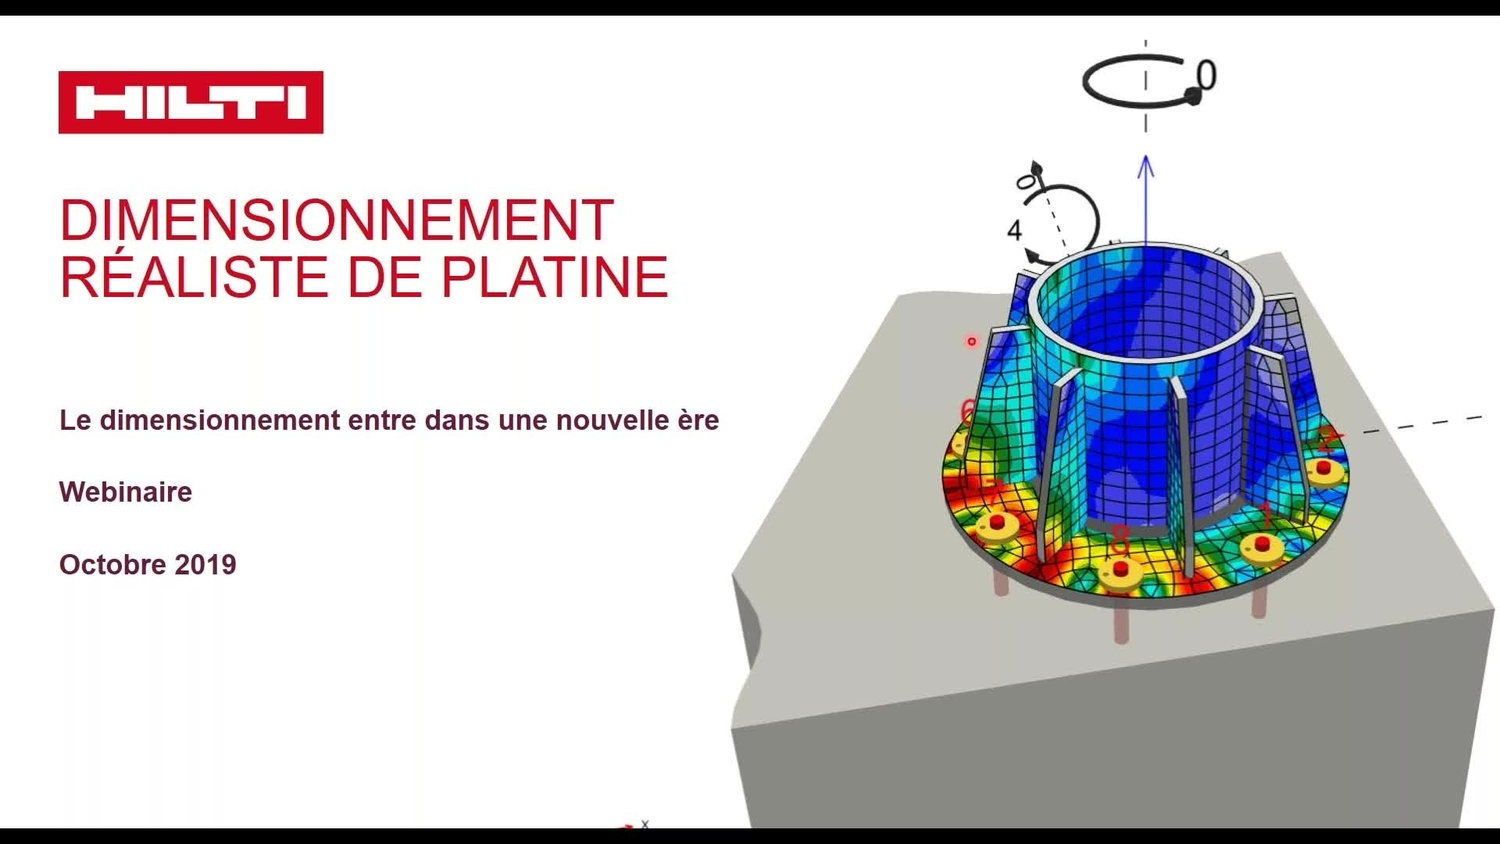 webinaire PROFIS Engineering dimensionnement platine